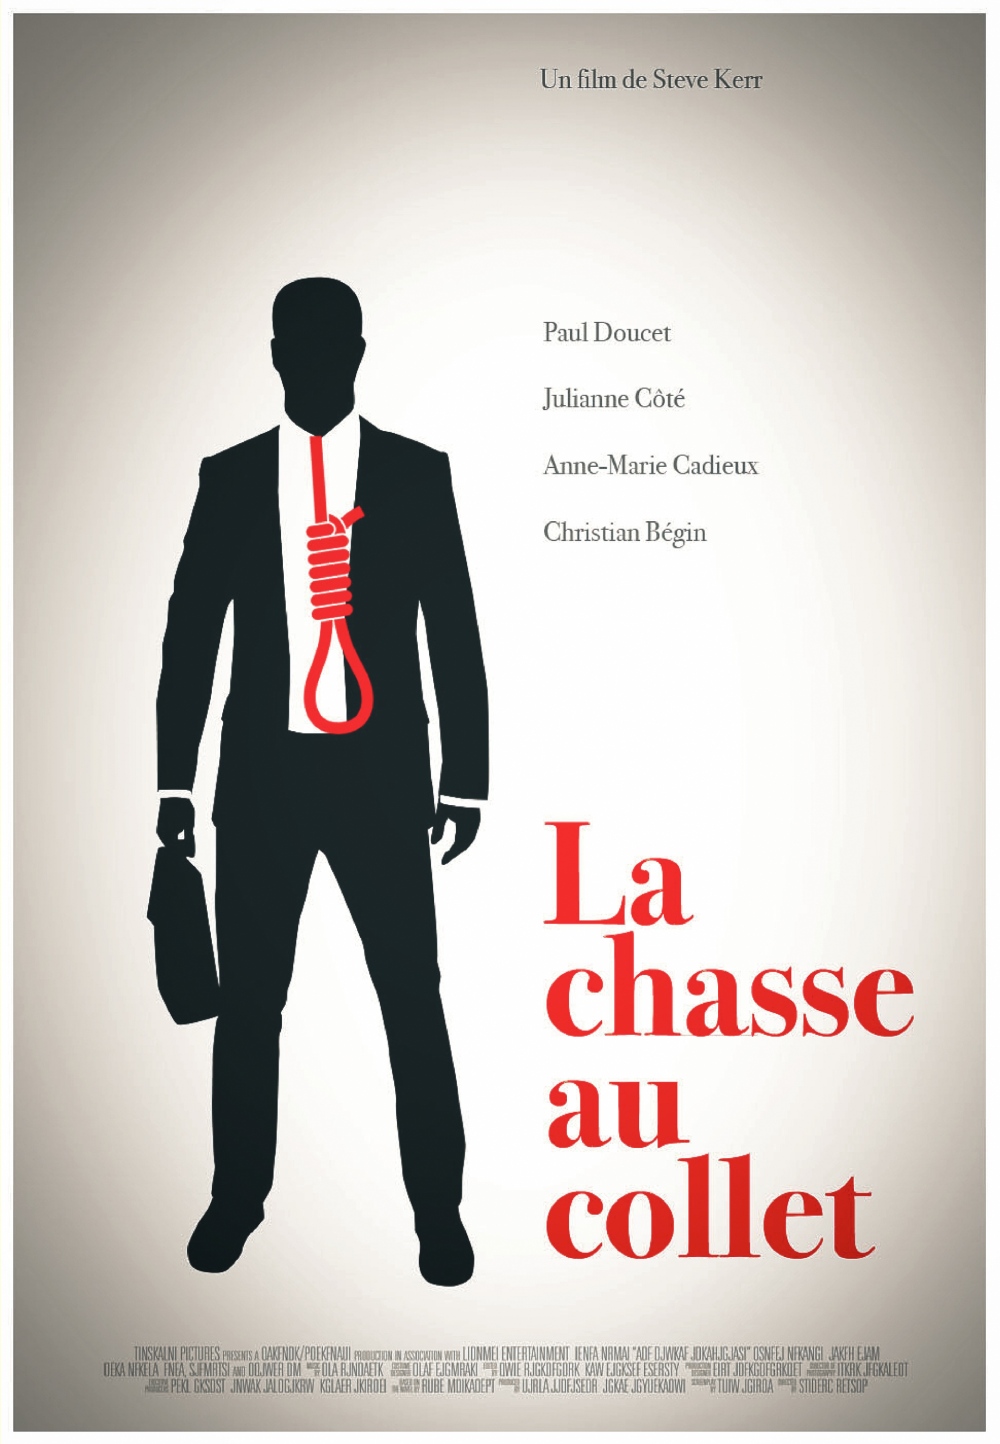 LACHASSEAUCOLLET-Poster-RENZO-28juillet_00018.PNG